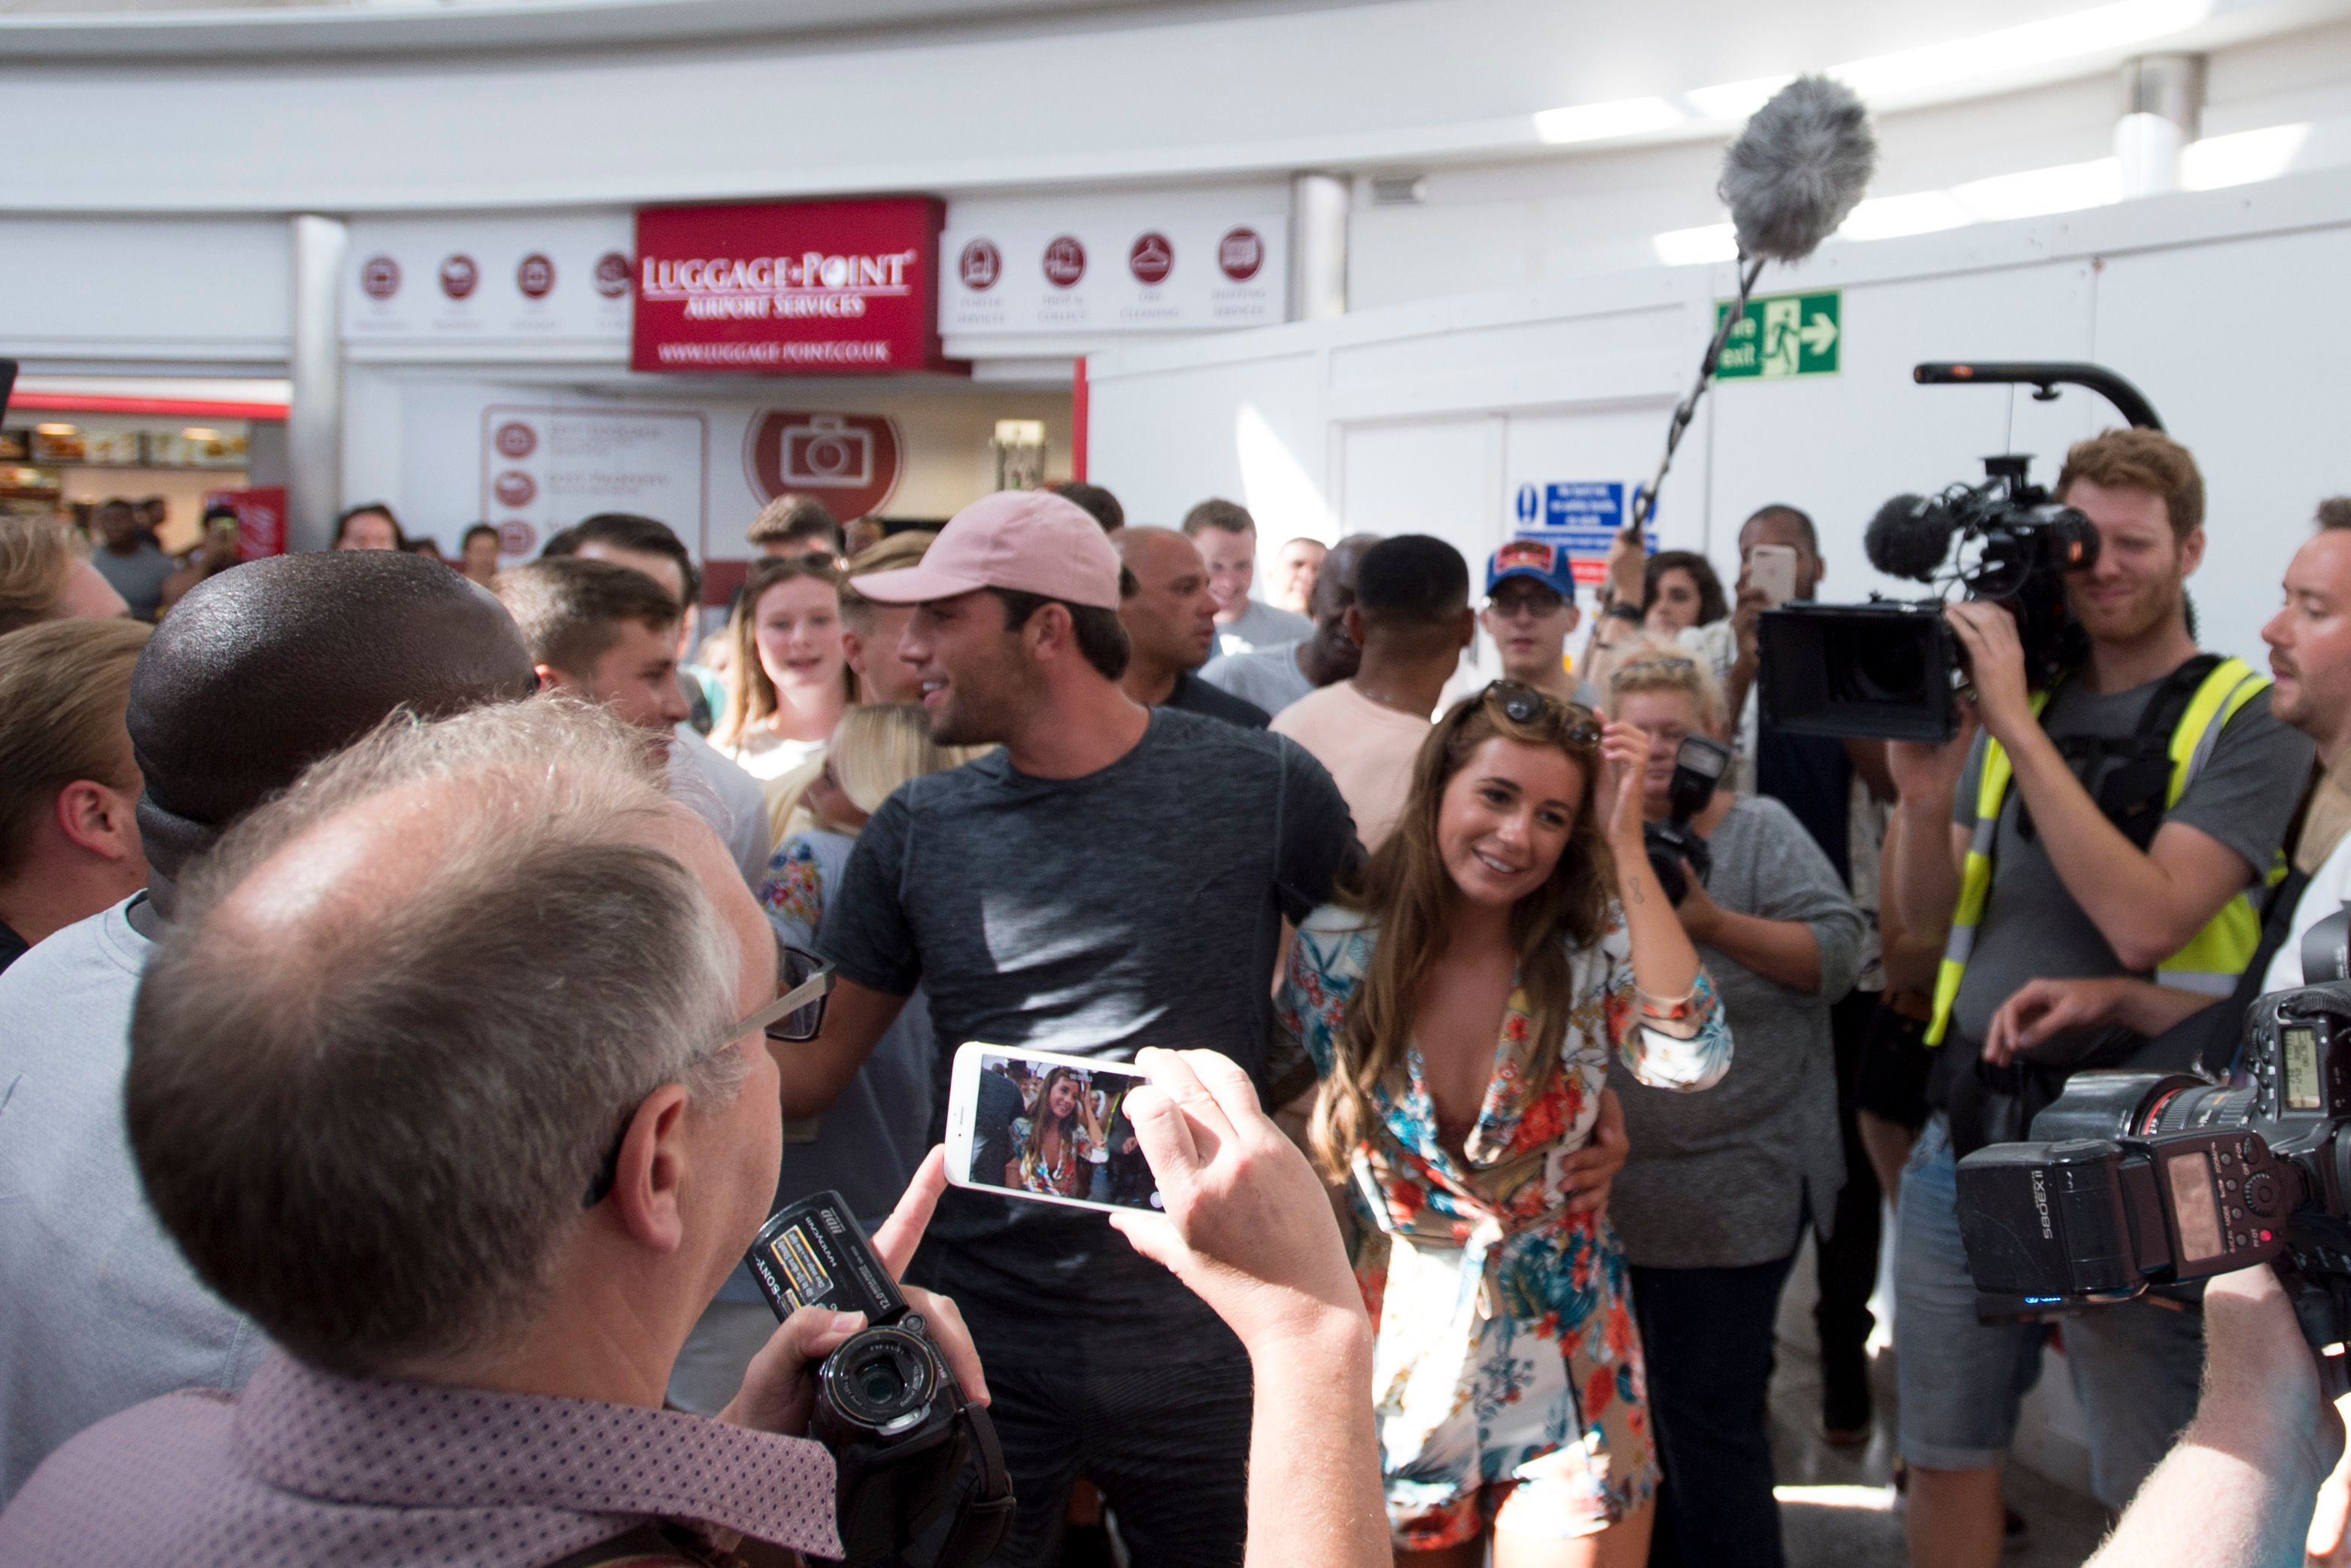 'Love Island' Stars Mobbed By Fans At Airport As They Arrive Back In